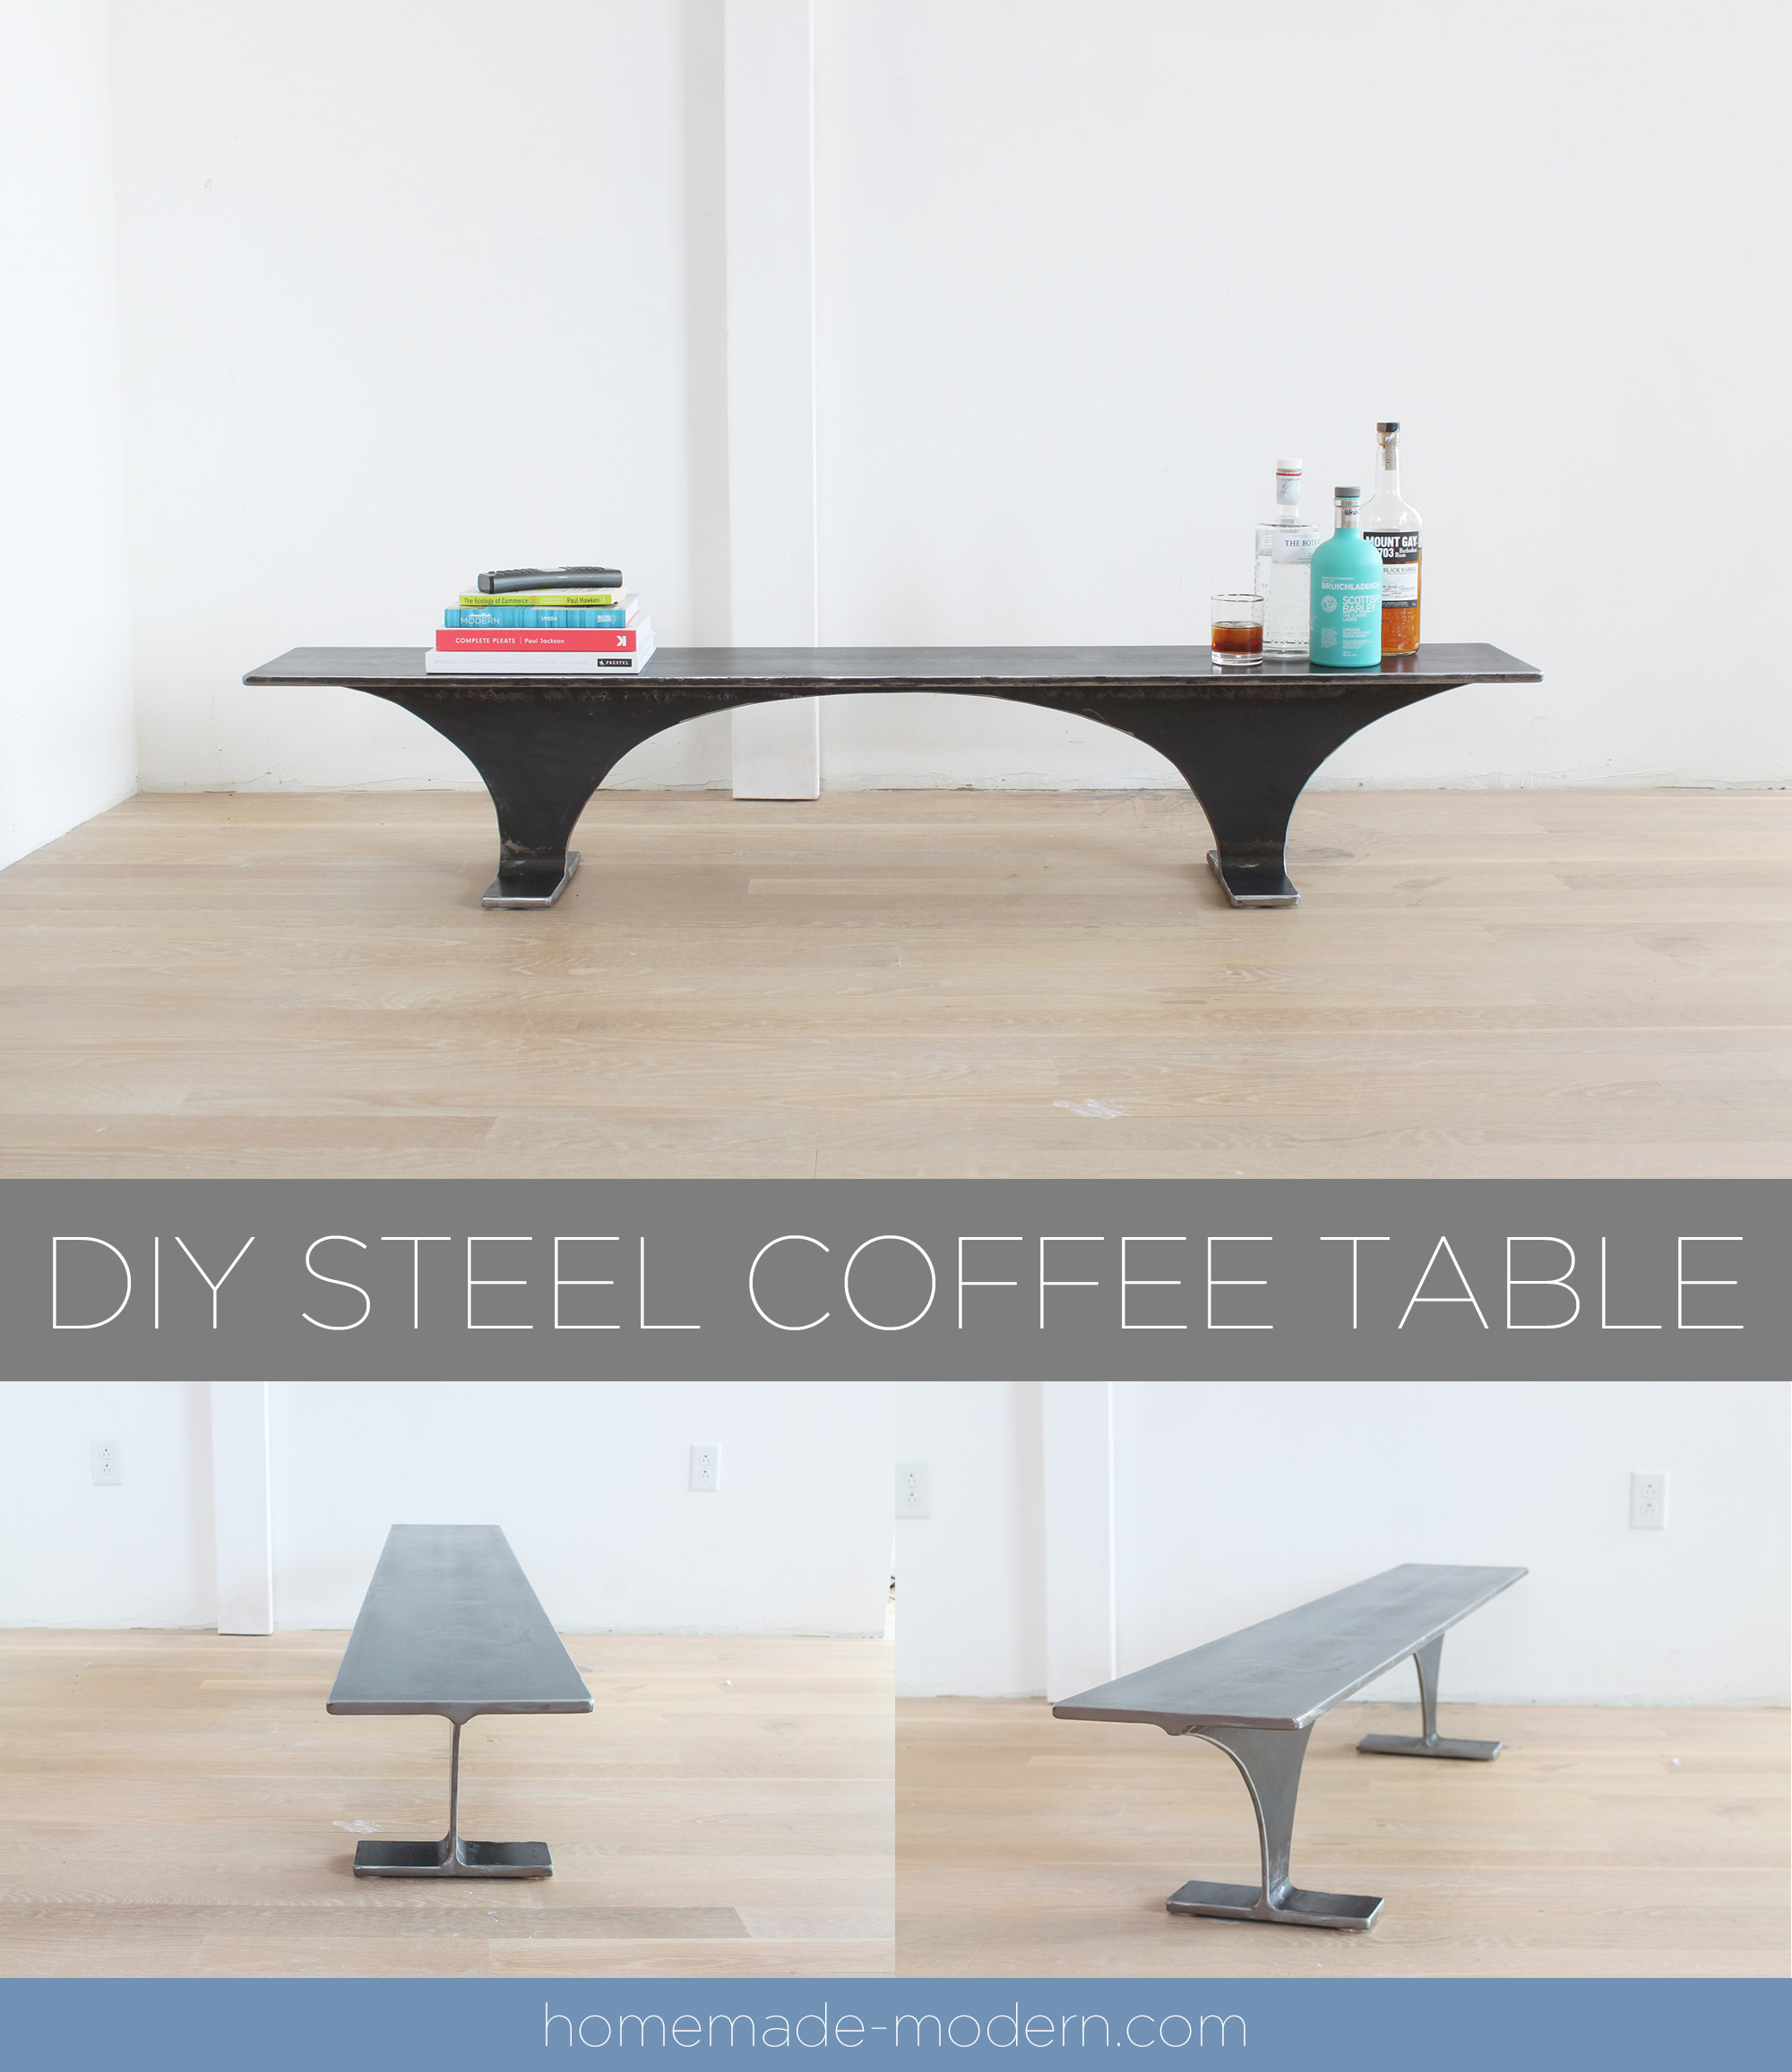 This steel coffee table or bench was carved from a single piece of I-Beam and was designed by Ben Uyeda. For more information on this project go to HomeMade-Modern.com